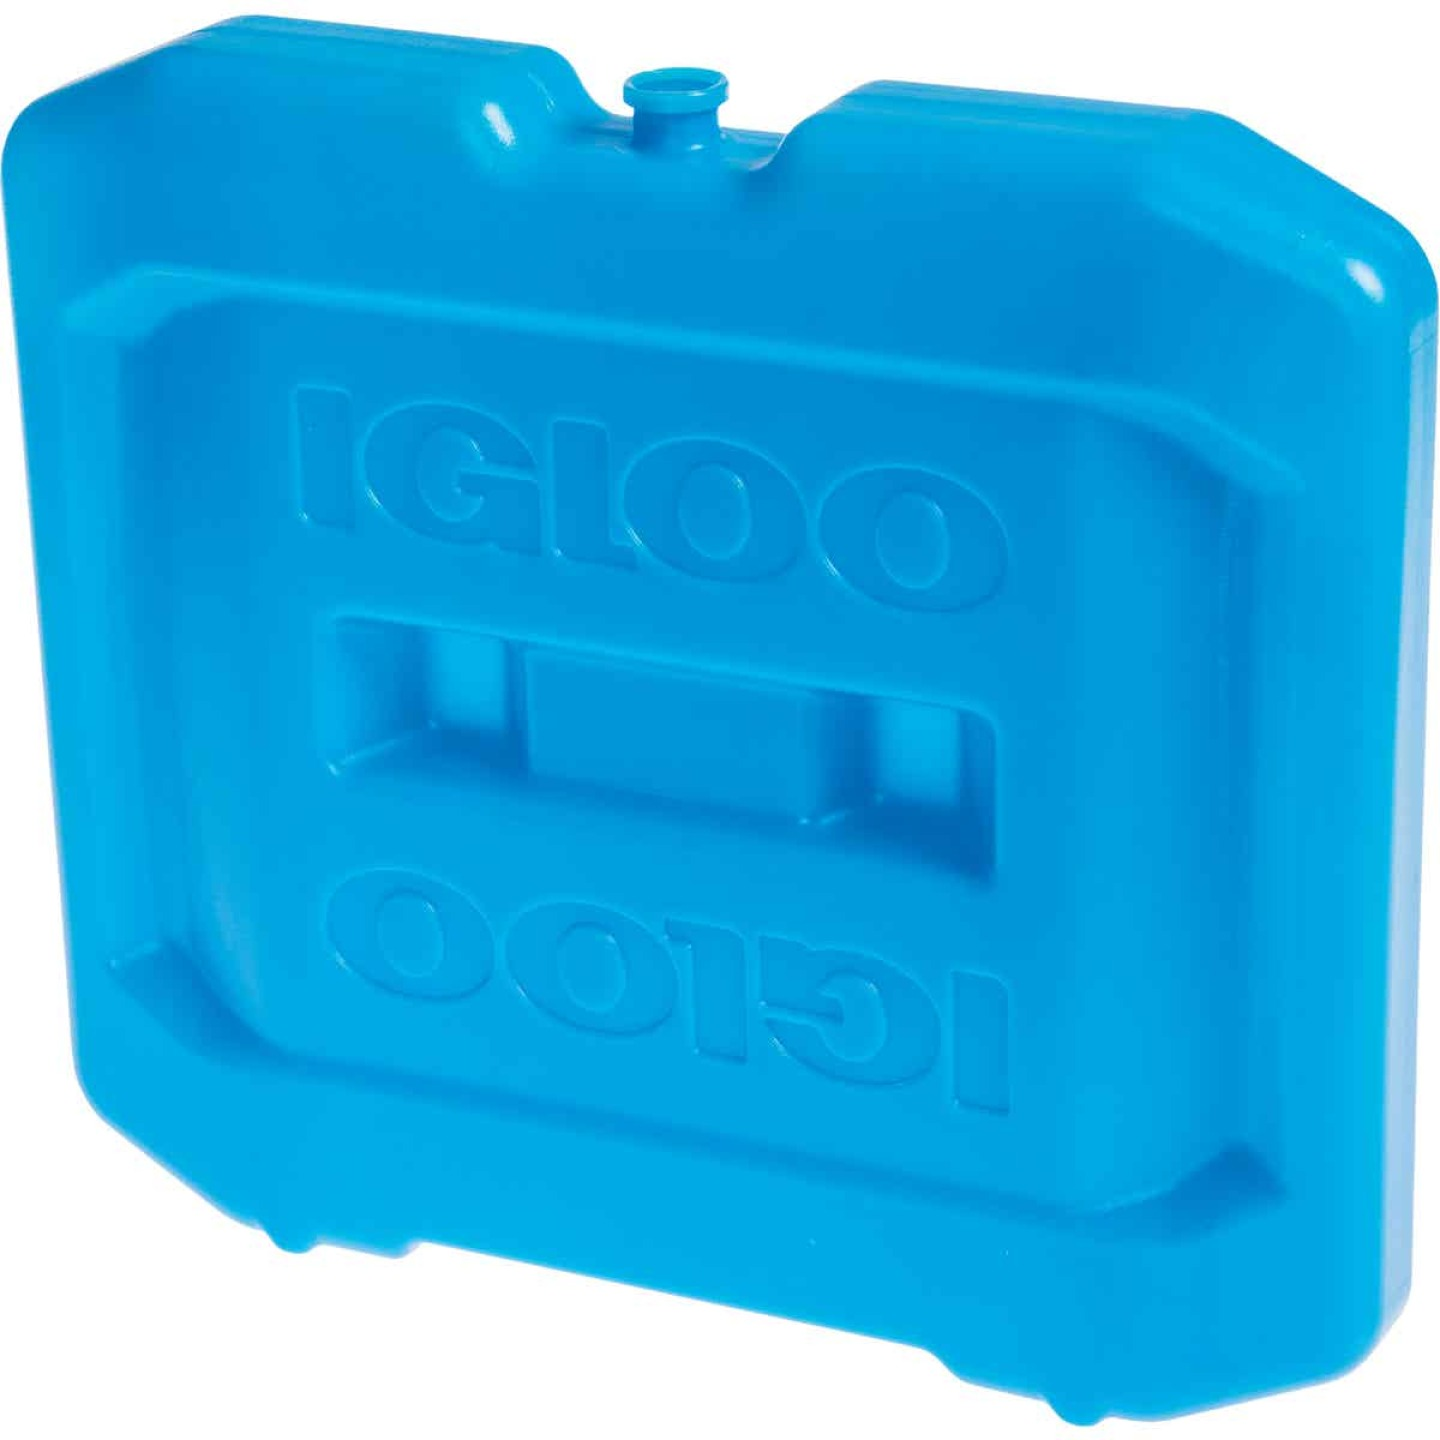 Igloo Maxcold 5 Lb. Extra Large Cooler Ice Pack Image 1